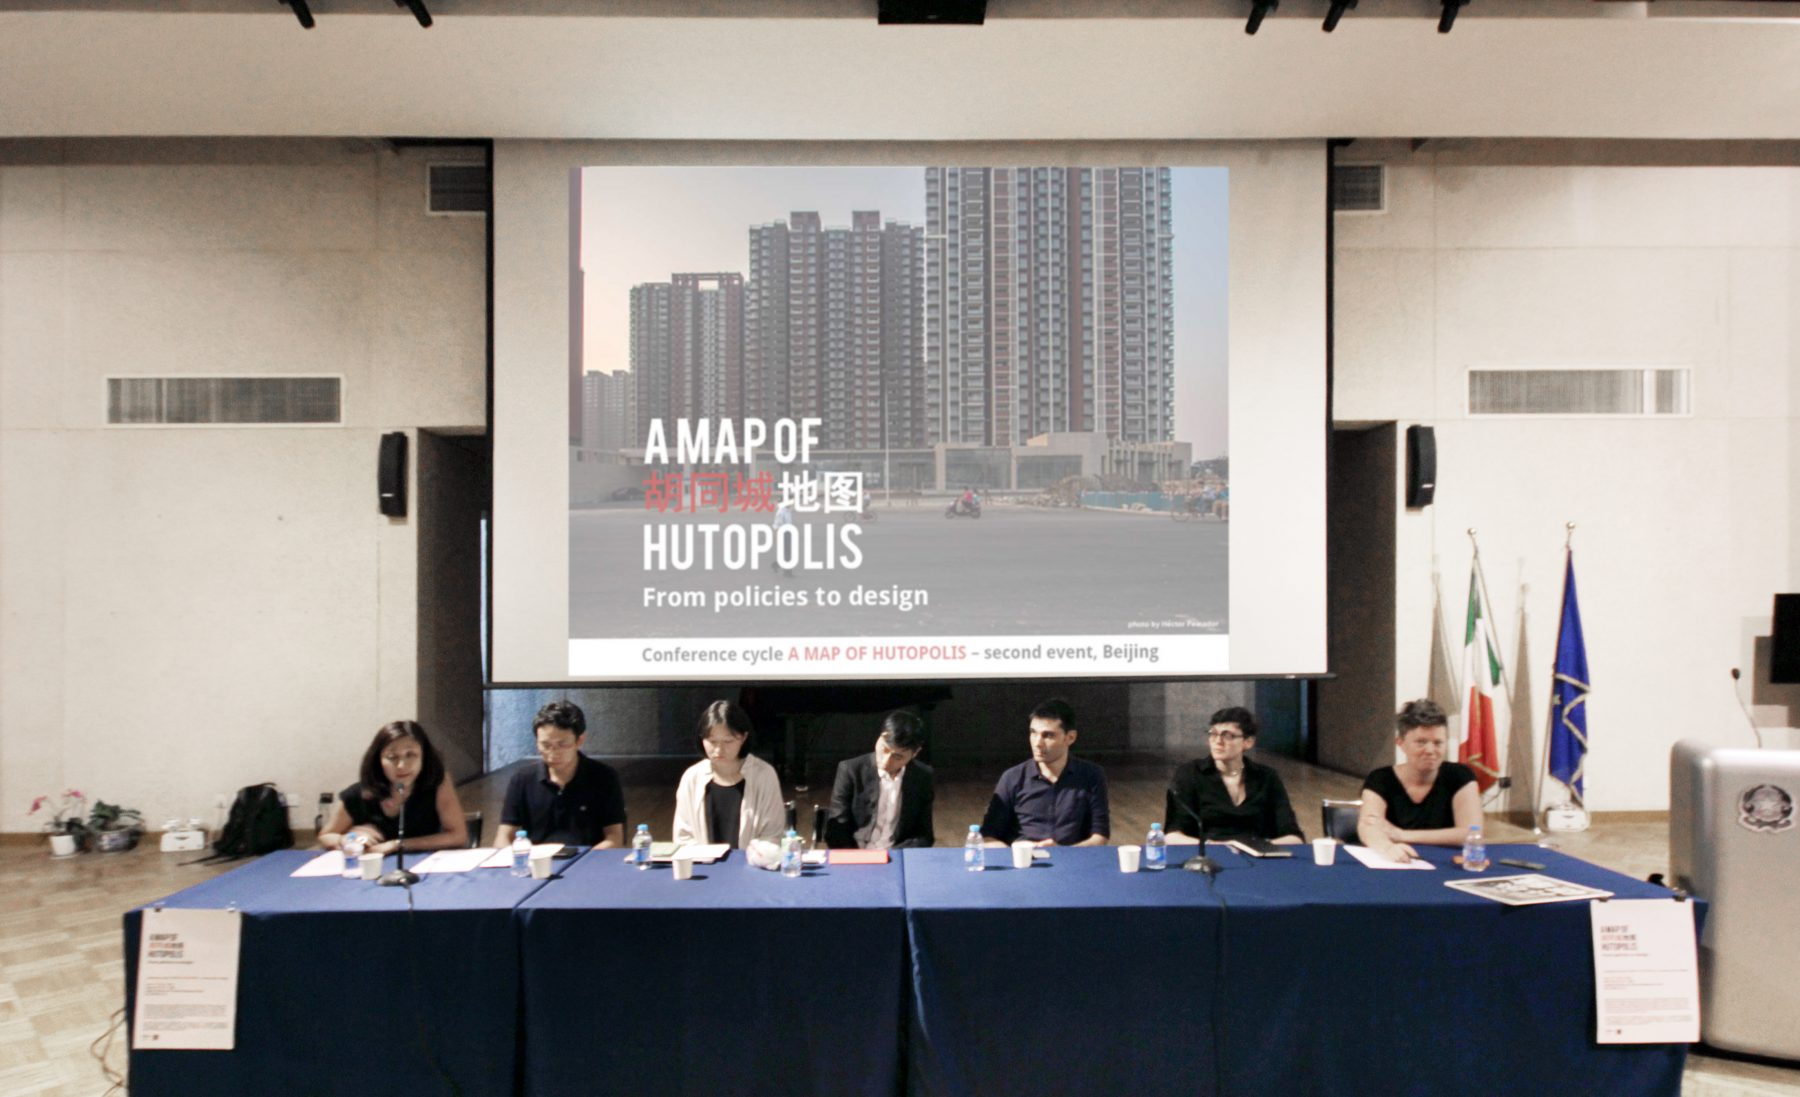 Matthew Hu, Toby Wong, Luis Aguirre Manso, Eugenia Murialdo, Celine Lamee, A map of hutopolis, aqso, lava, Beijing